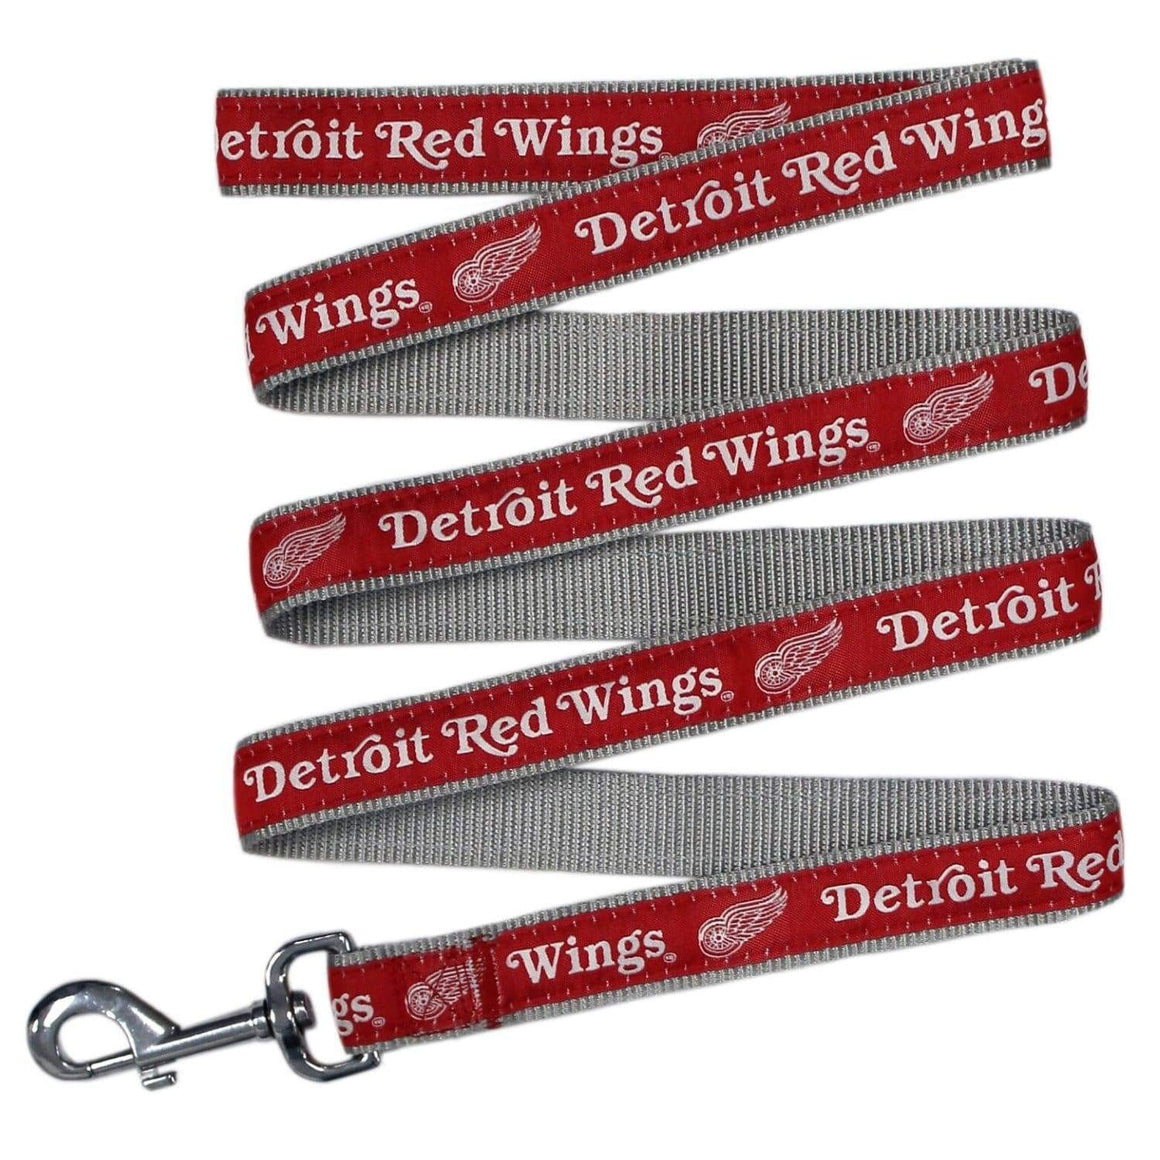 Pets First Dog-products NHL Medium Detroit Red Wings Pet Leash By Pets First